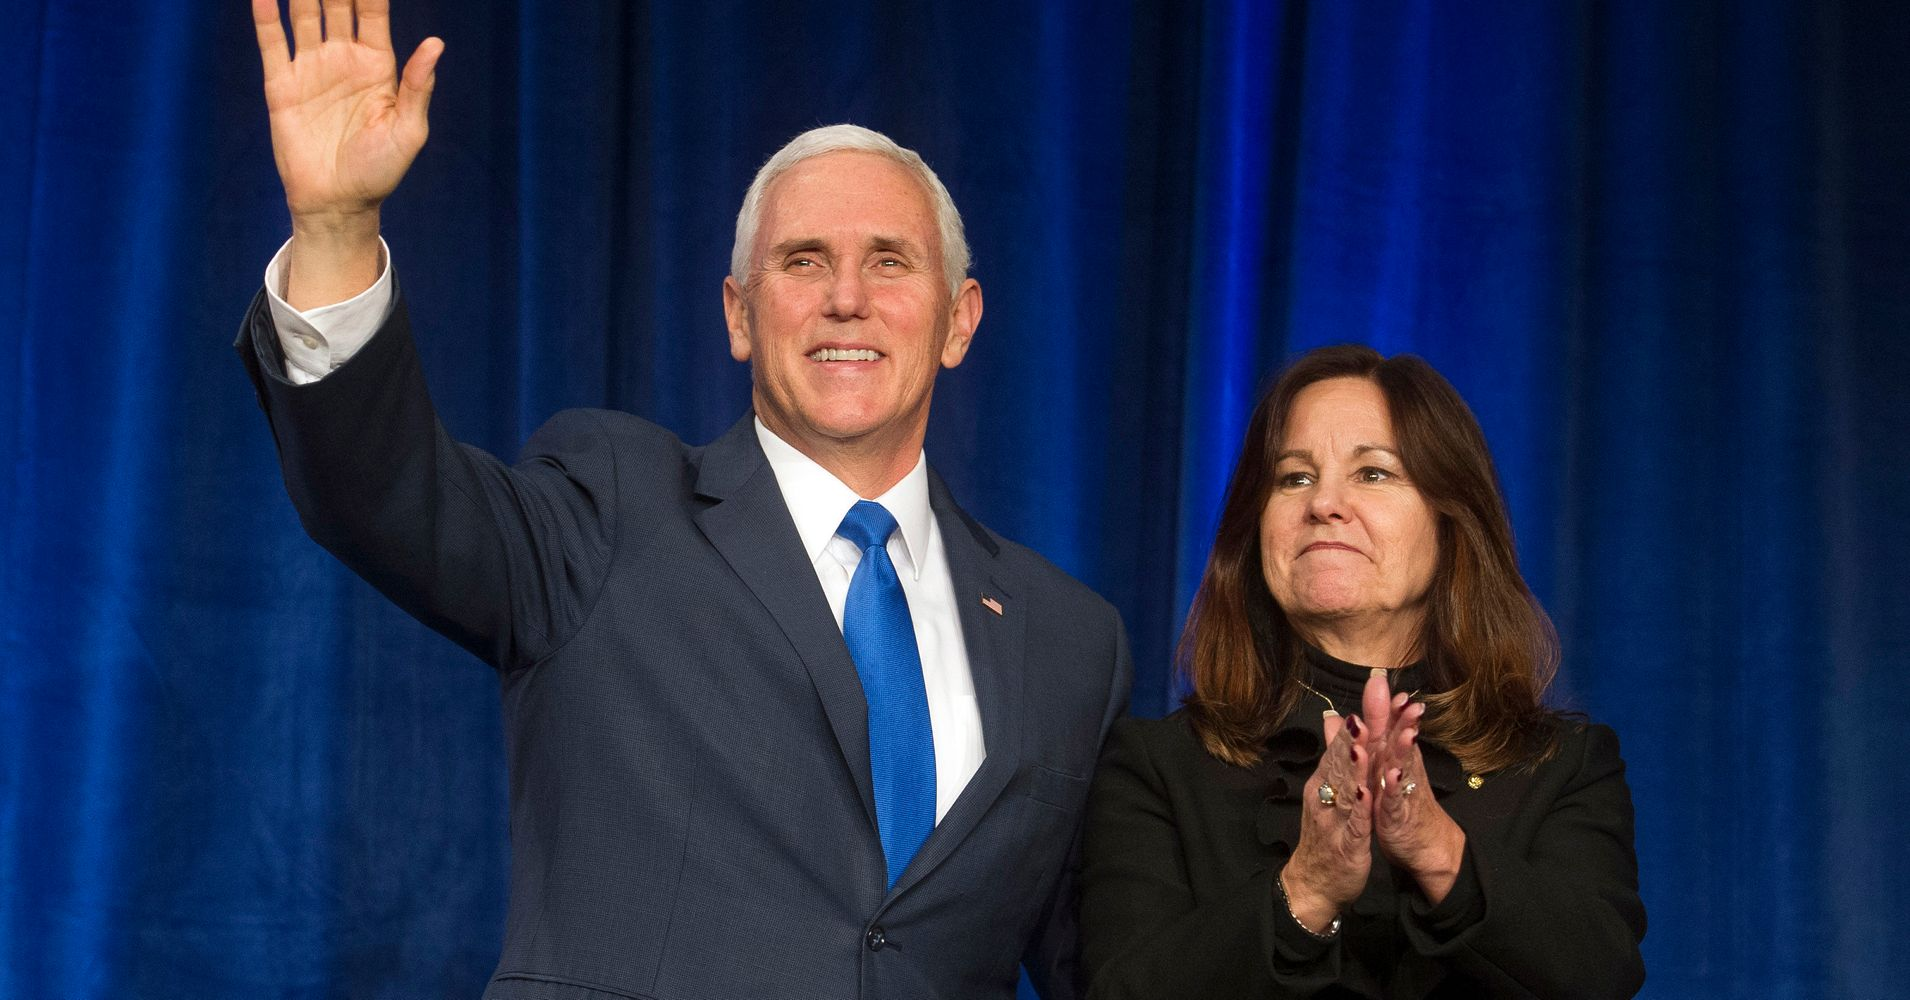 Creative And Academic Freedom Under Threat From Religious: Christian Schools Like Karen Pence's Are The Real Threat